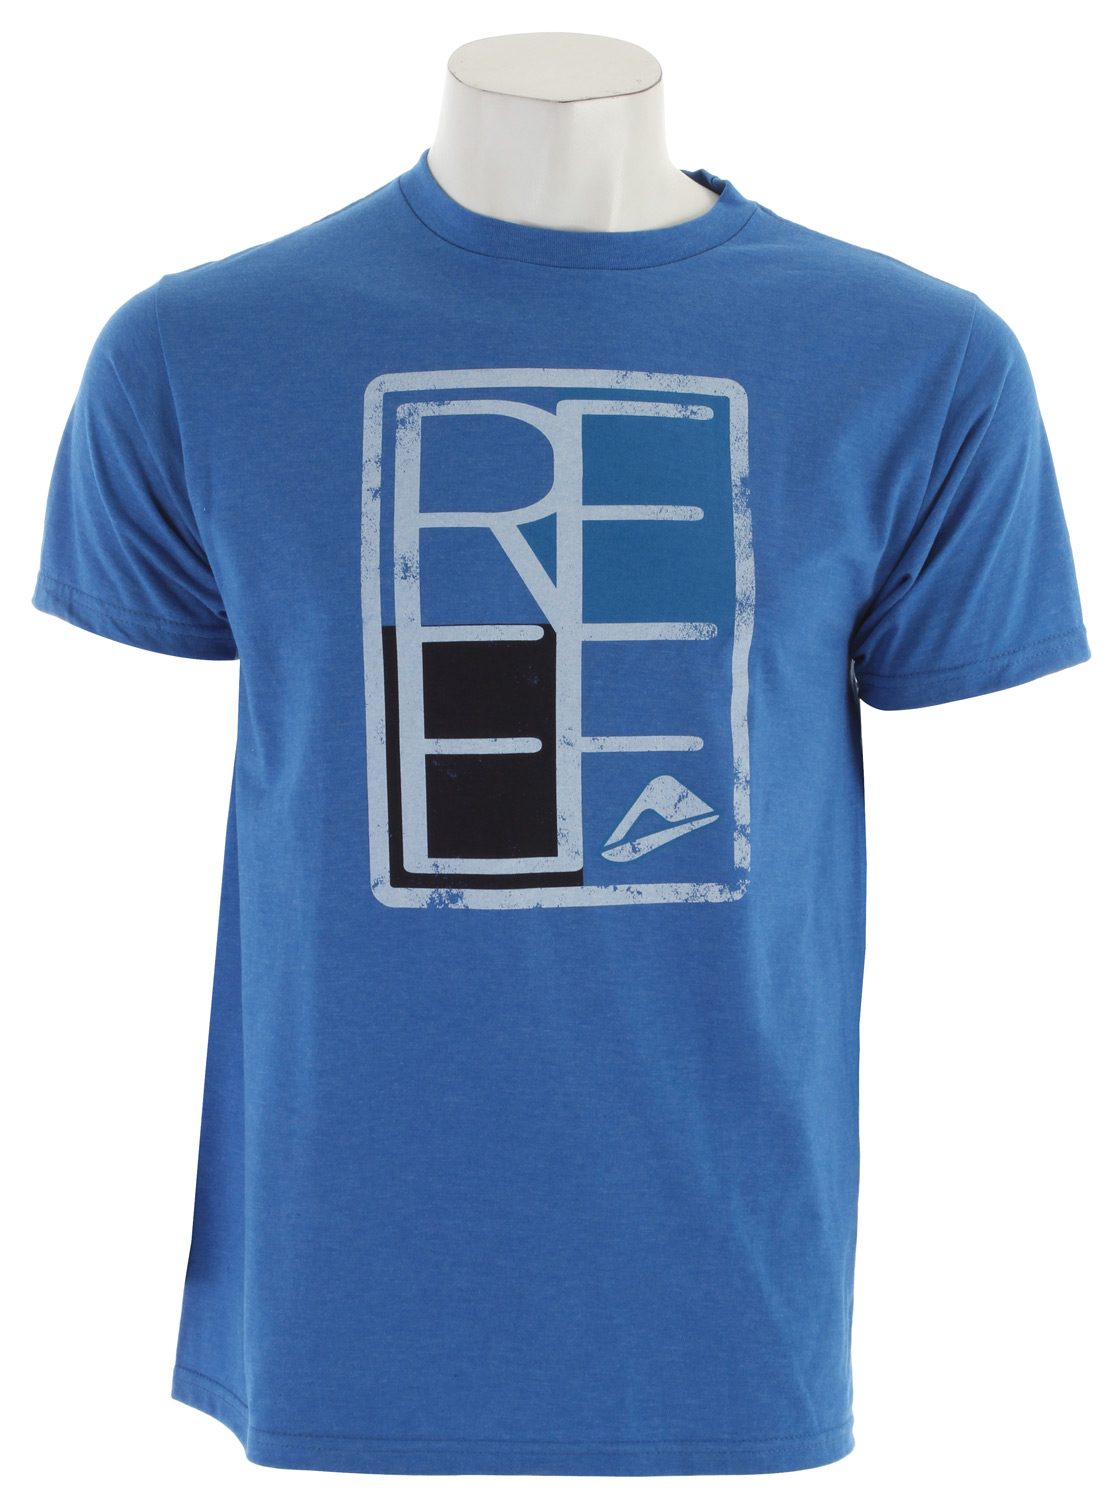 Surf Key Features of The Reef Rectangular T-Shirt: Slim Fit Crew Neck Short Sleeve 50/50 cotton polyester Center front screen print - $23.00